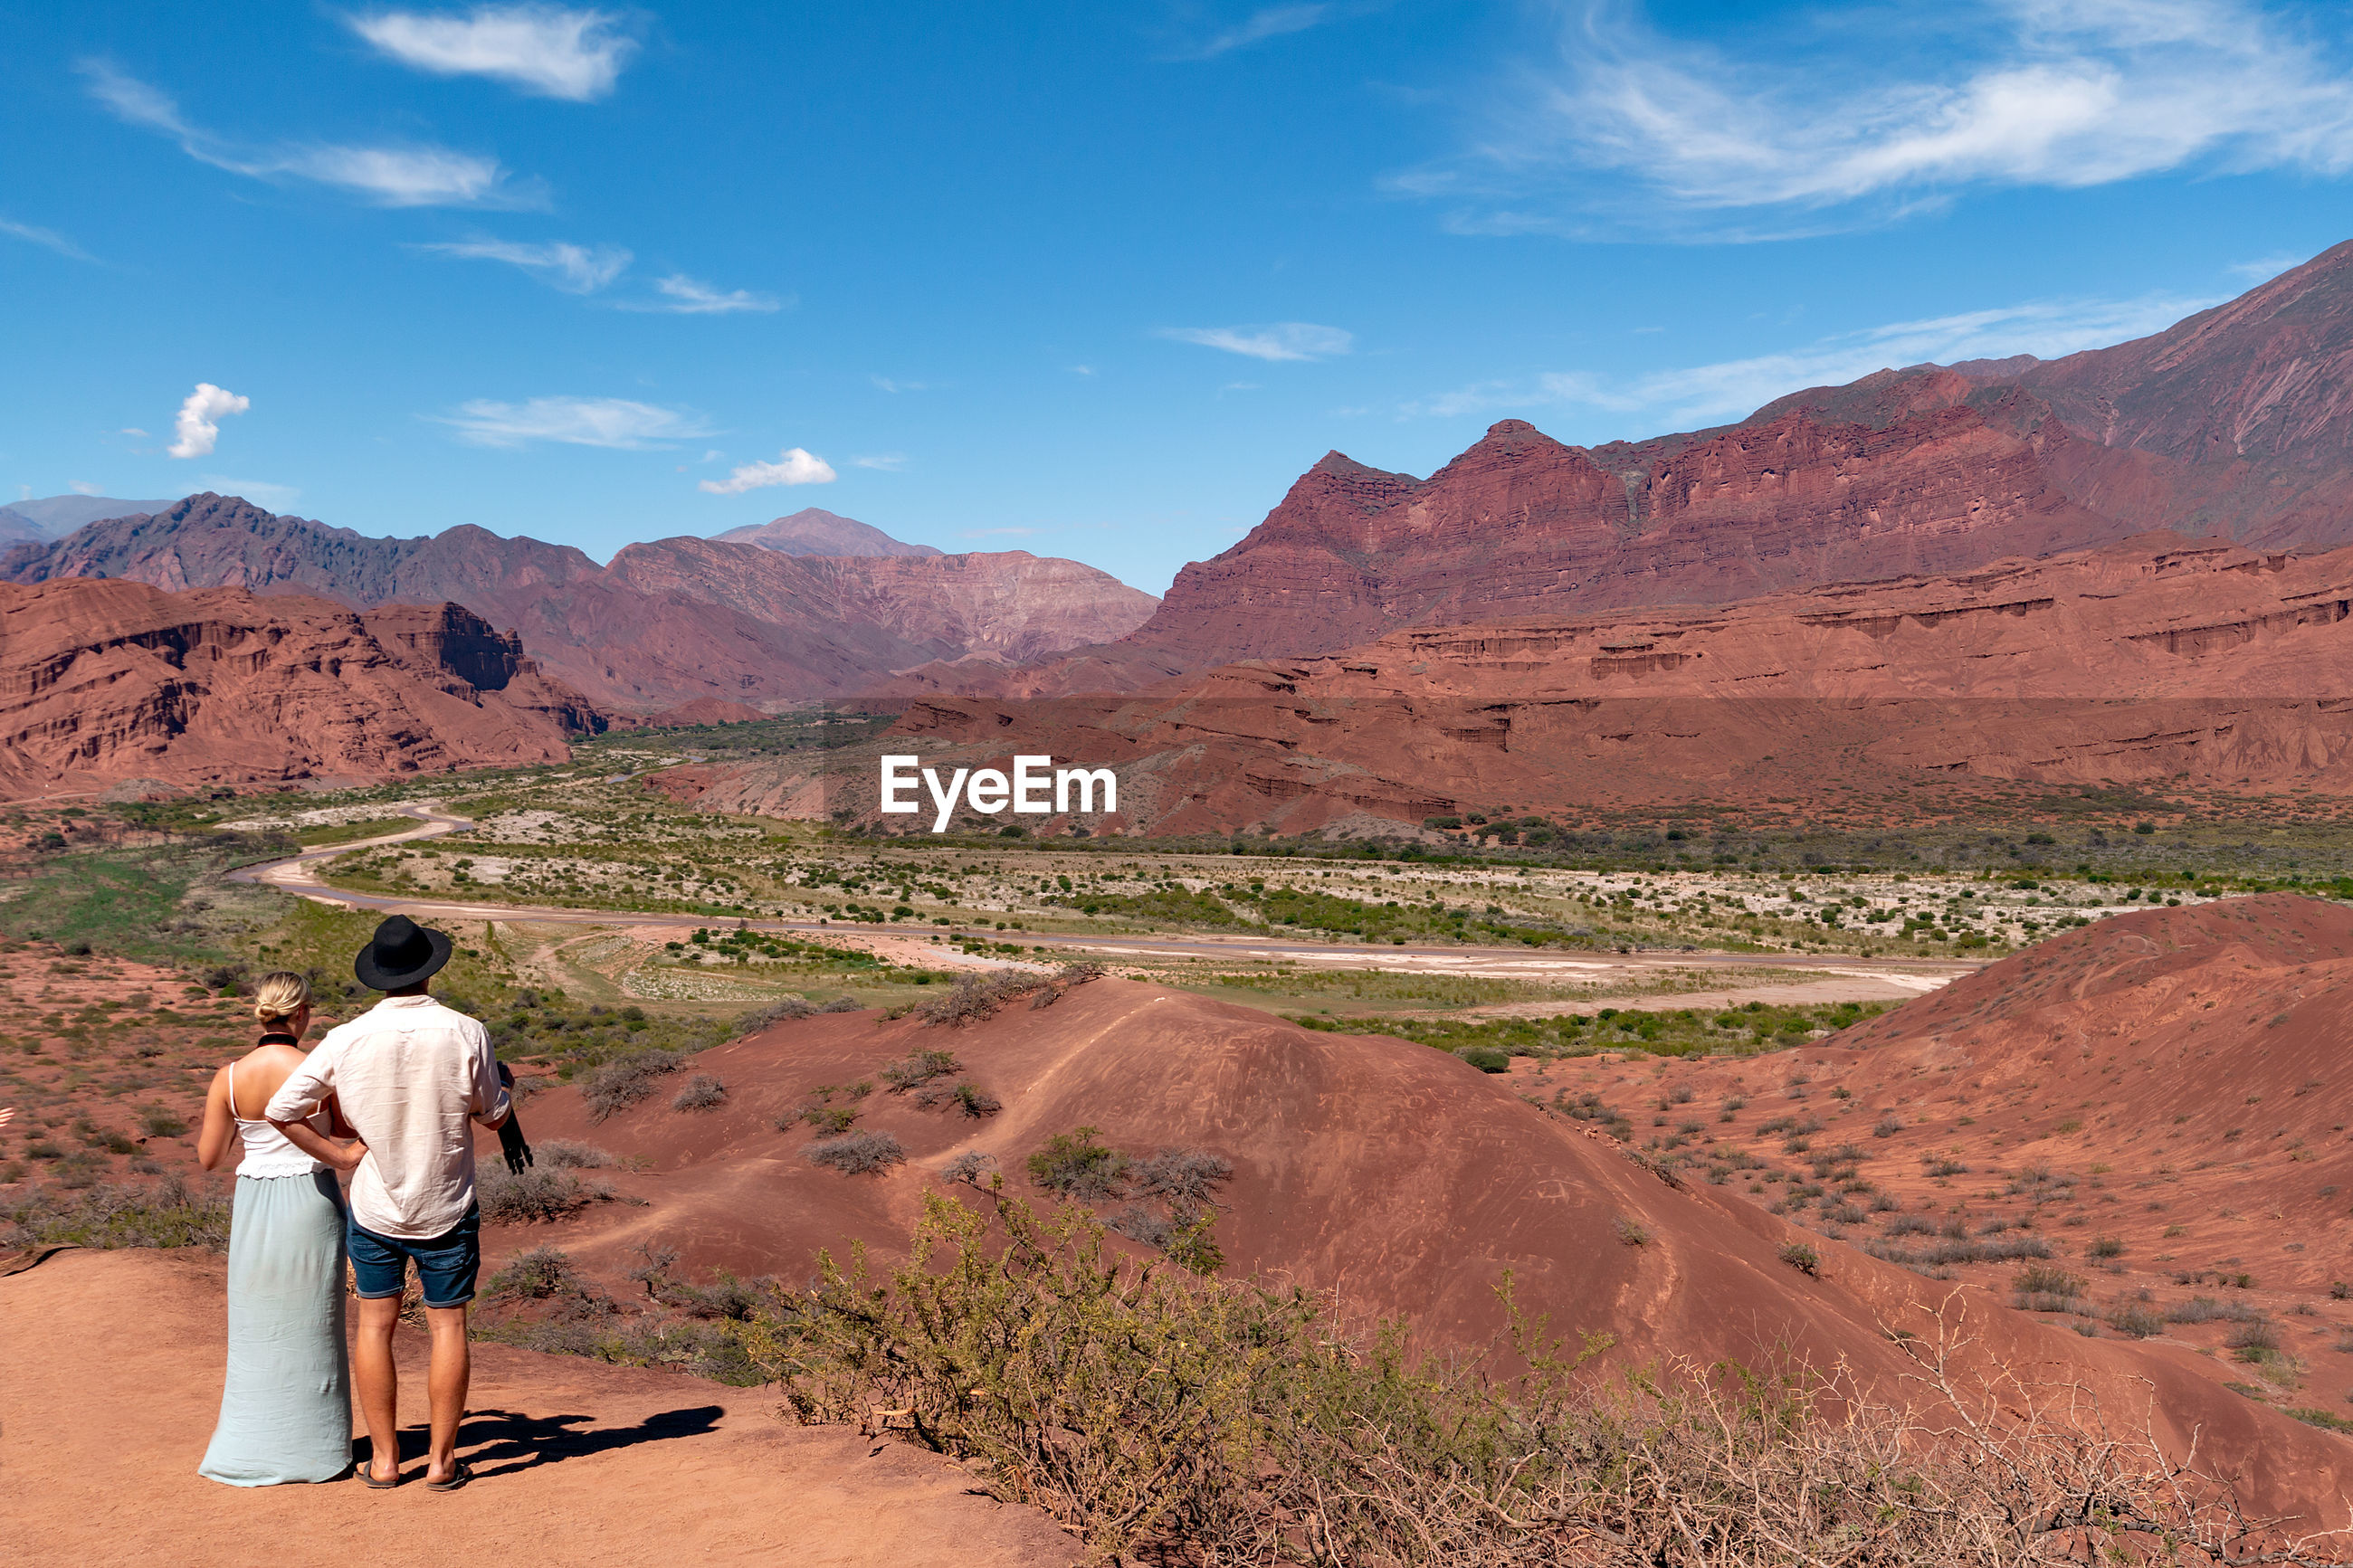 REAR VIEW OF MAN STANDING ON MOUNTAIN ROAD AGAINST SKY